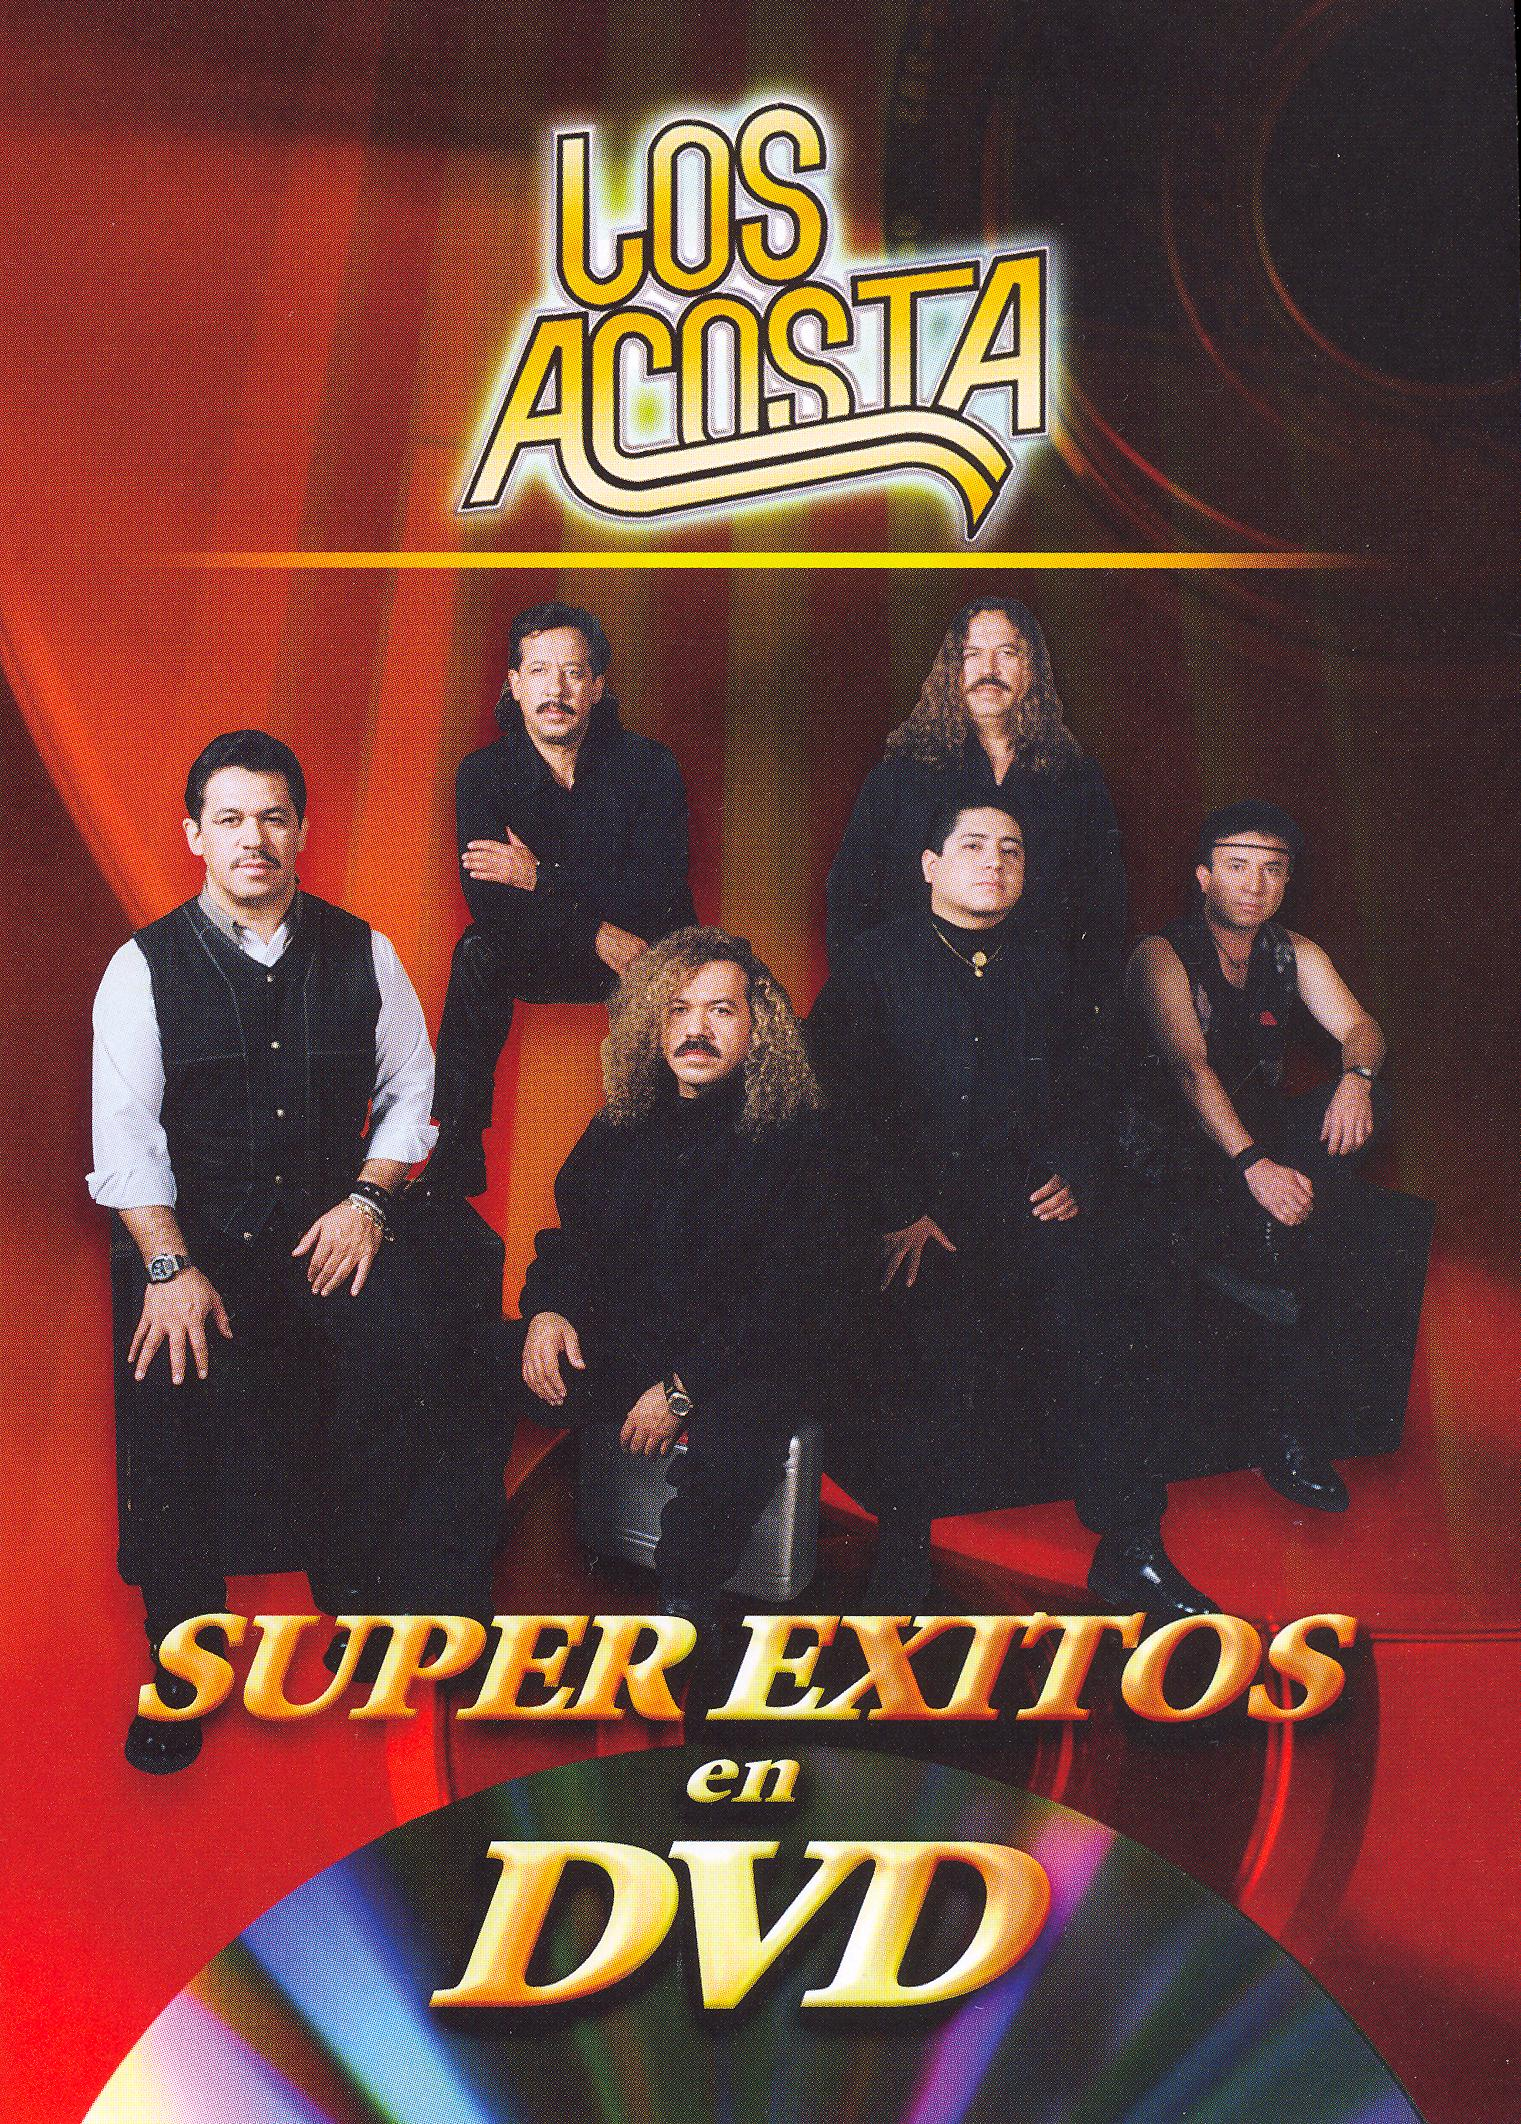 Los Acosta: Super Exitos en DVD